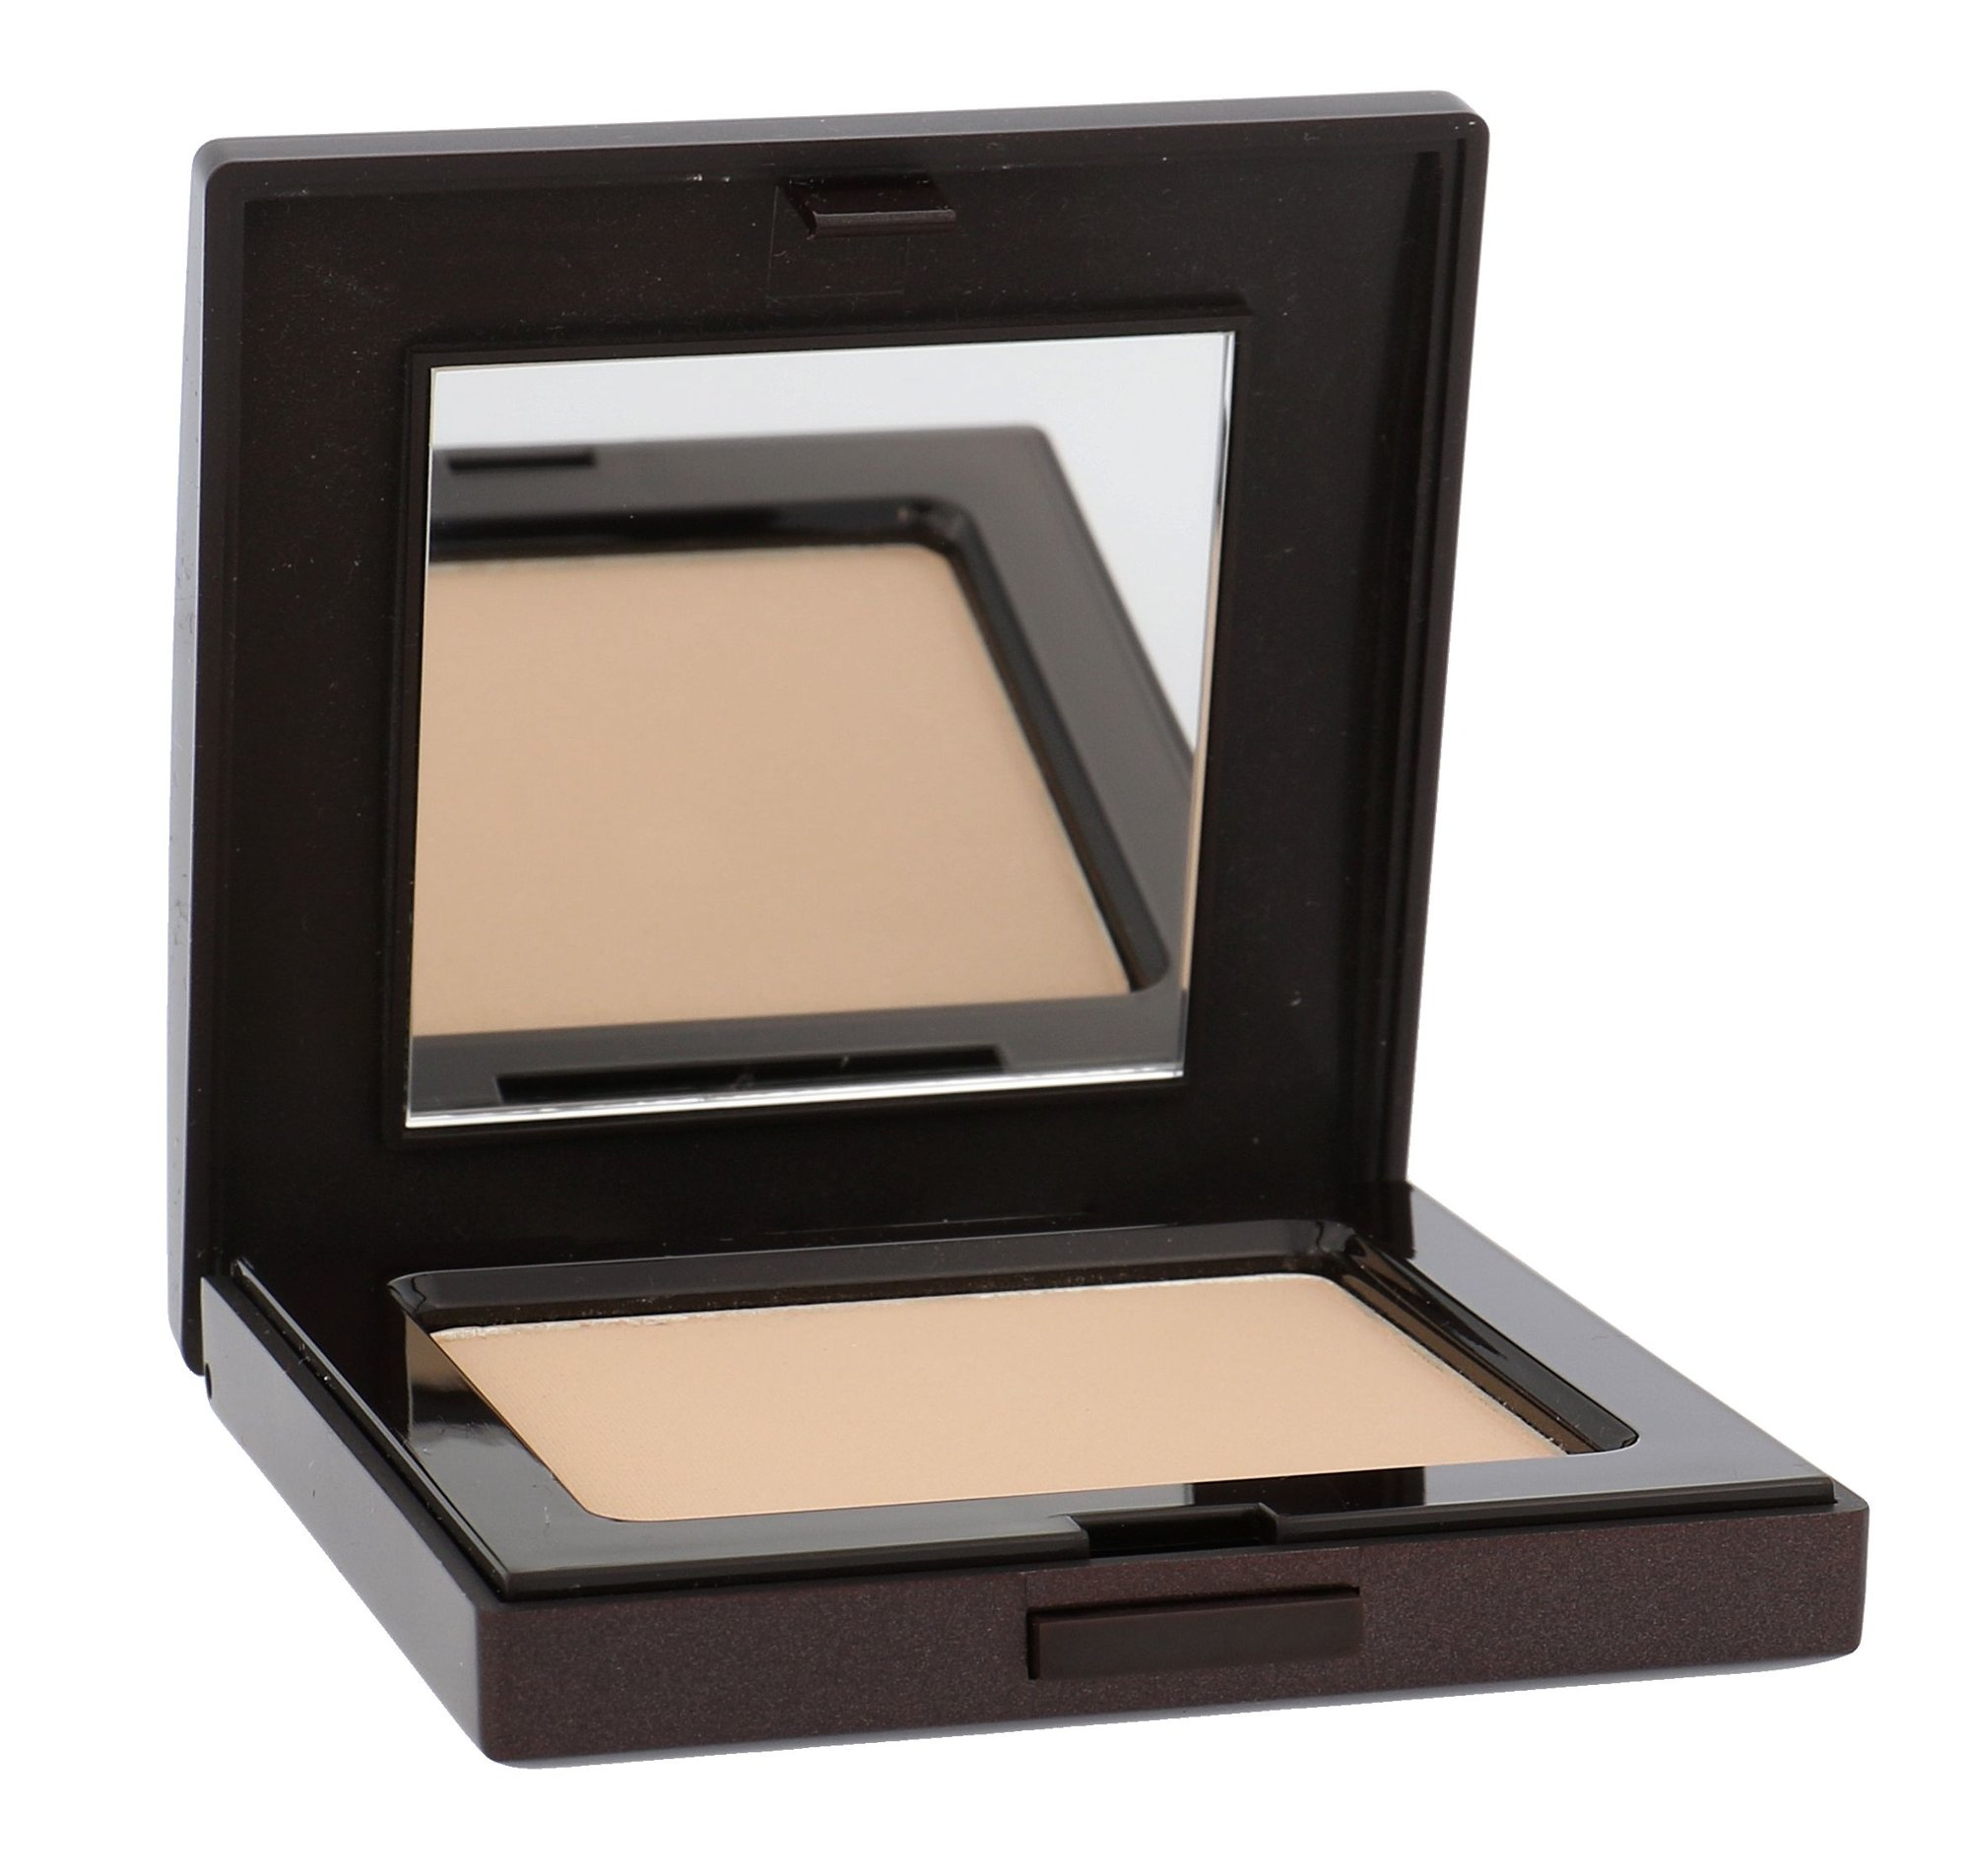 Laura Mercier Mineral Pressed Powder Cosmetic 8,1g Natural Beige